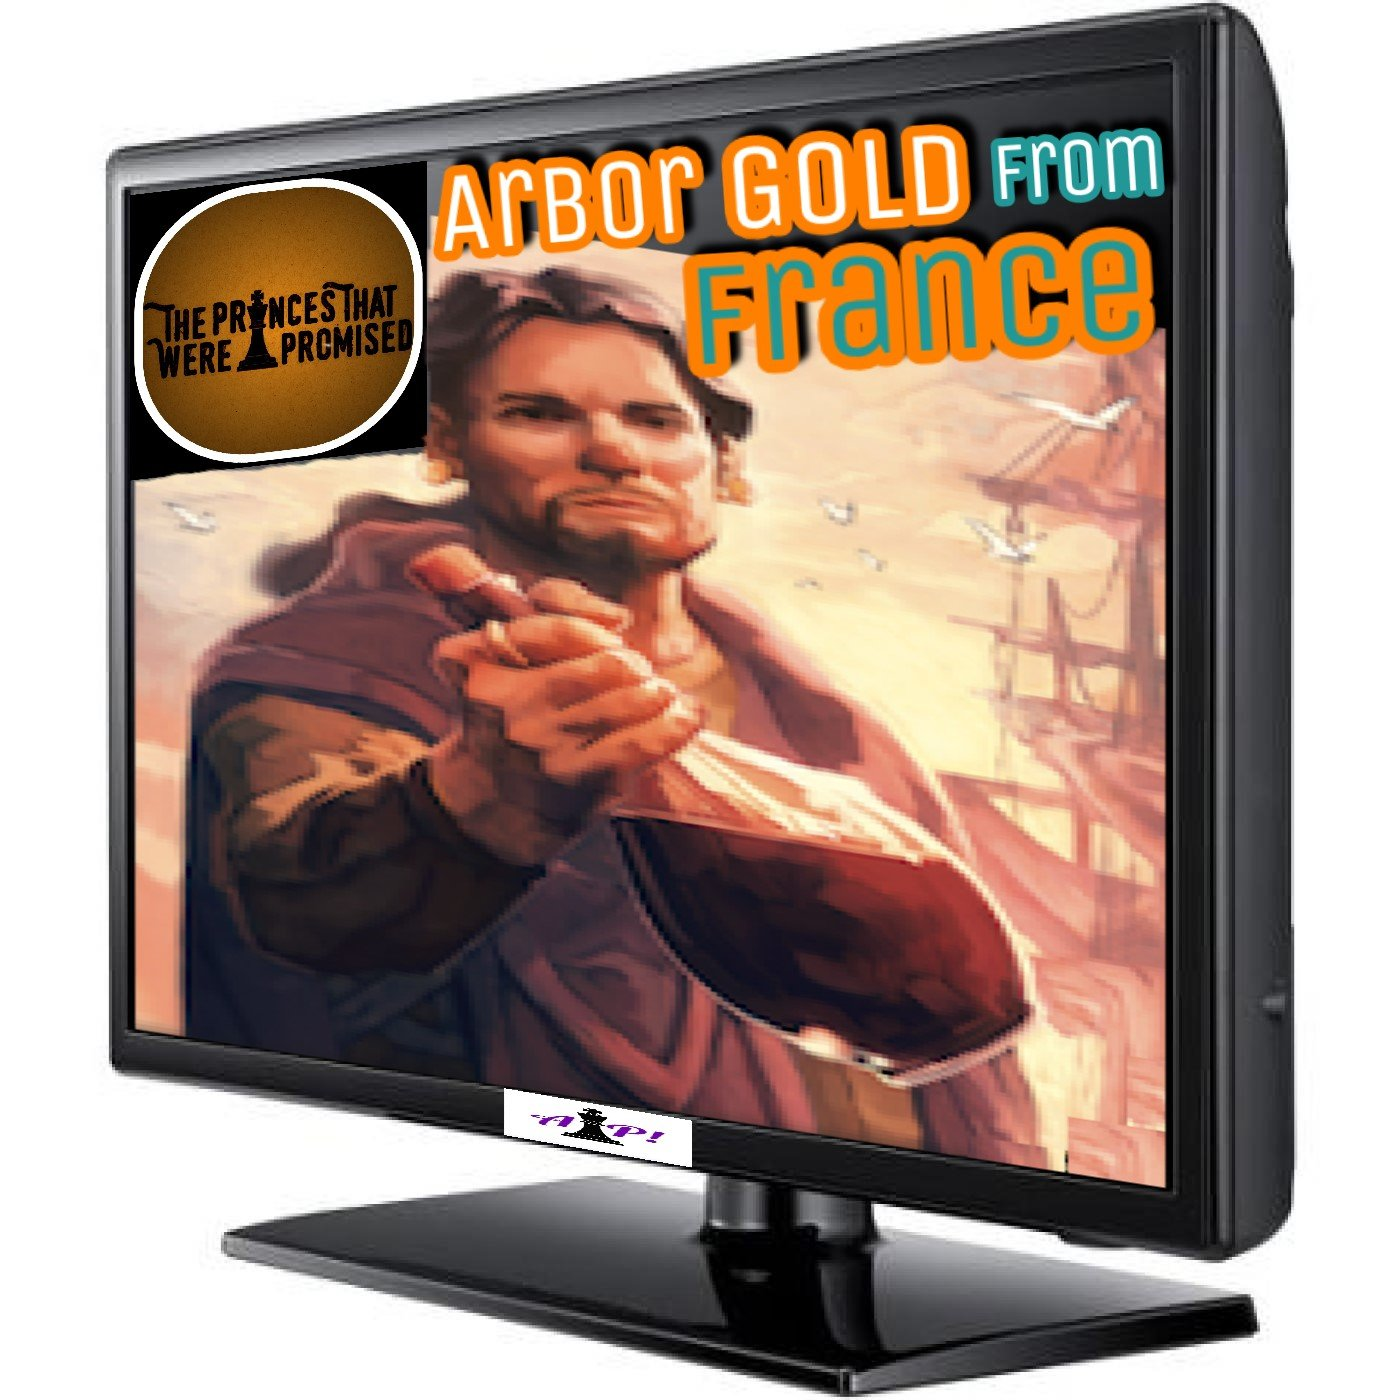 Arbor Gold From France (Sp3.1)